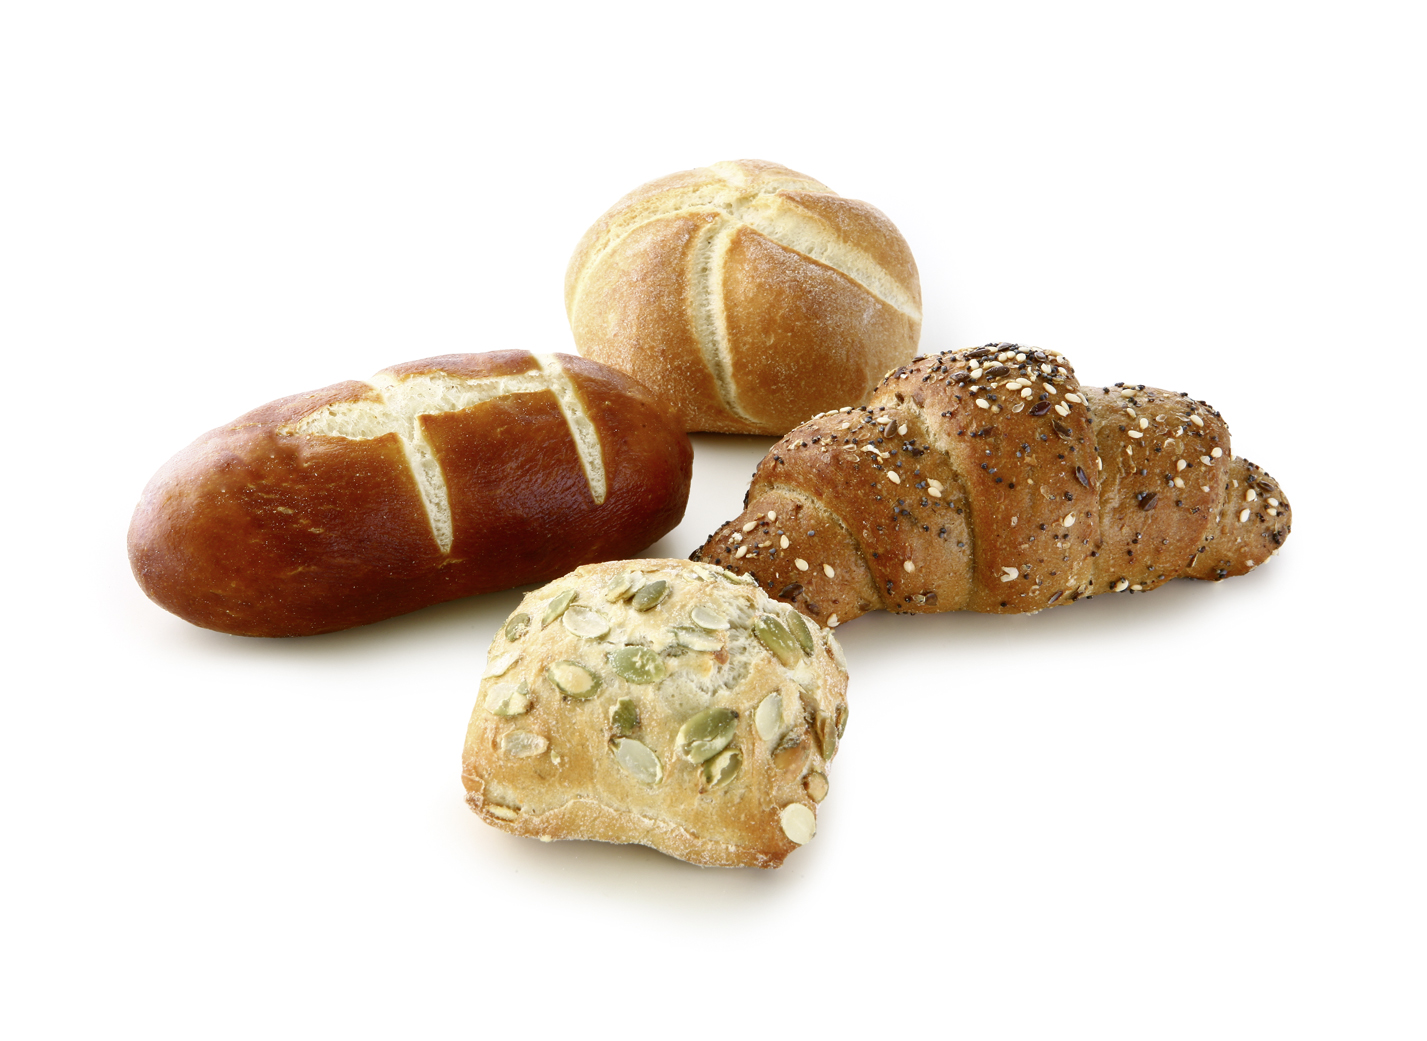 Special Jour-Pastry - Mini Mix of the varieties: Grain-Quark Stick, Pumpkin Seed Roll, Kaiser Roll and Lye Stick